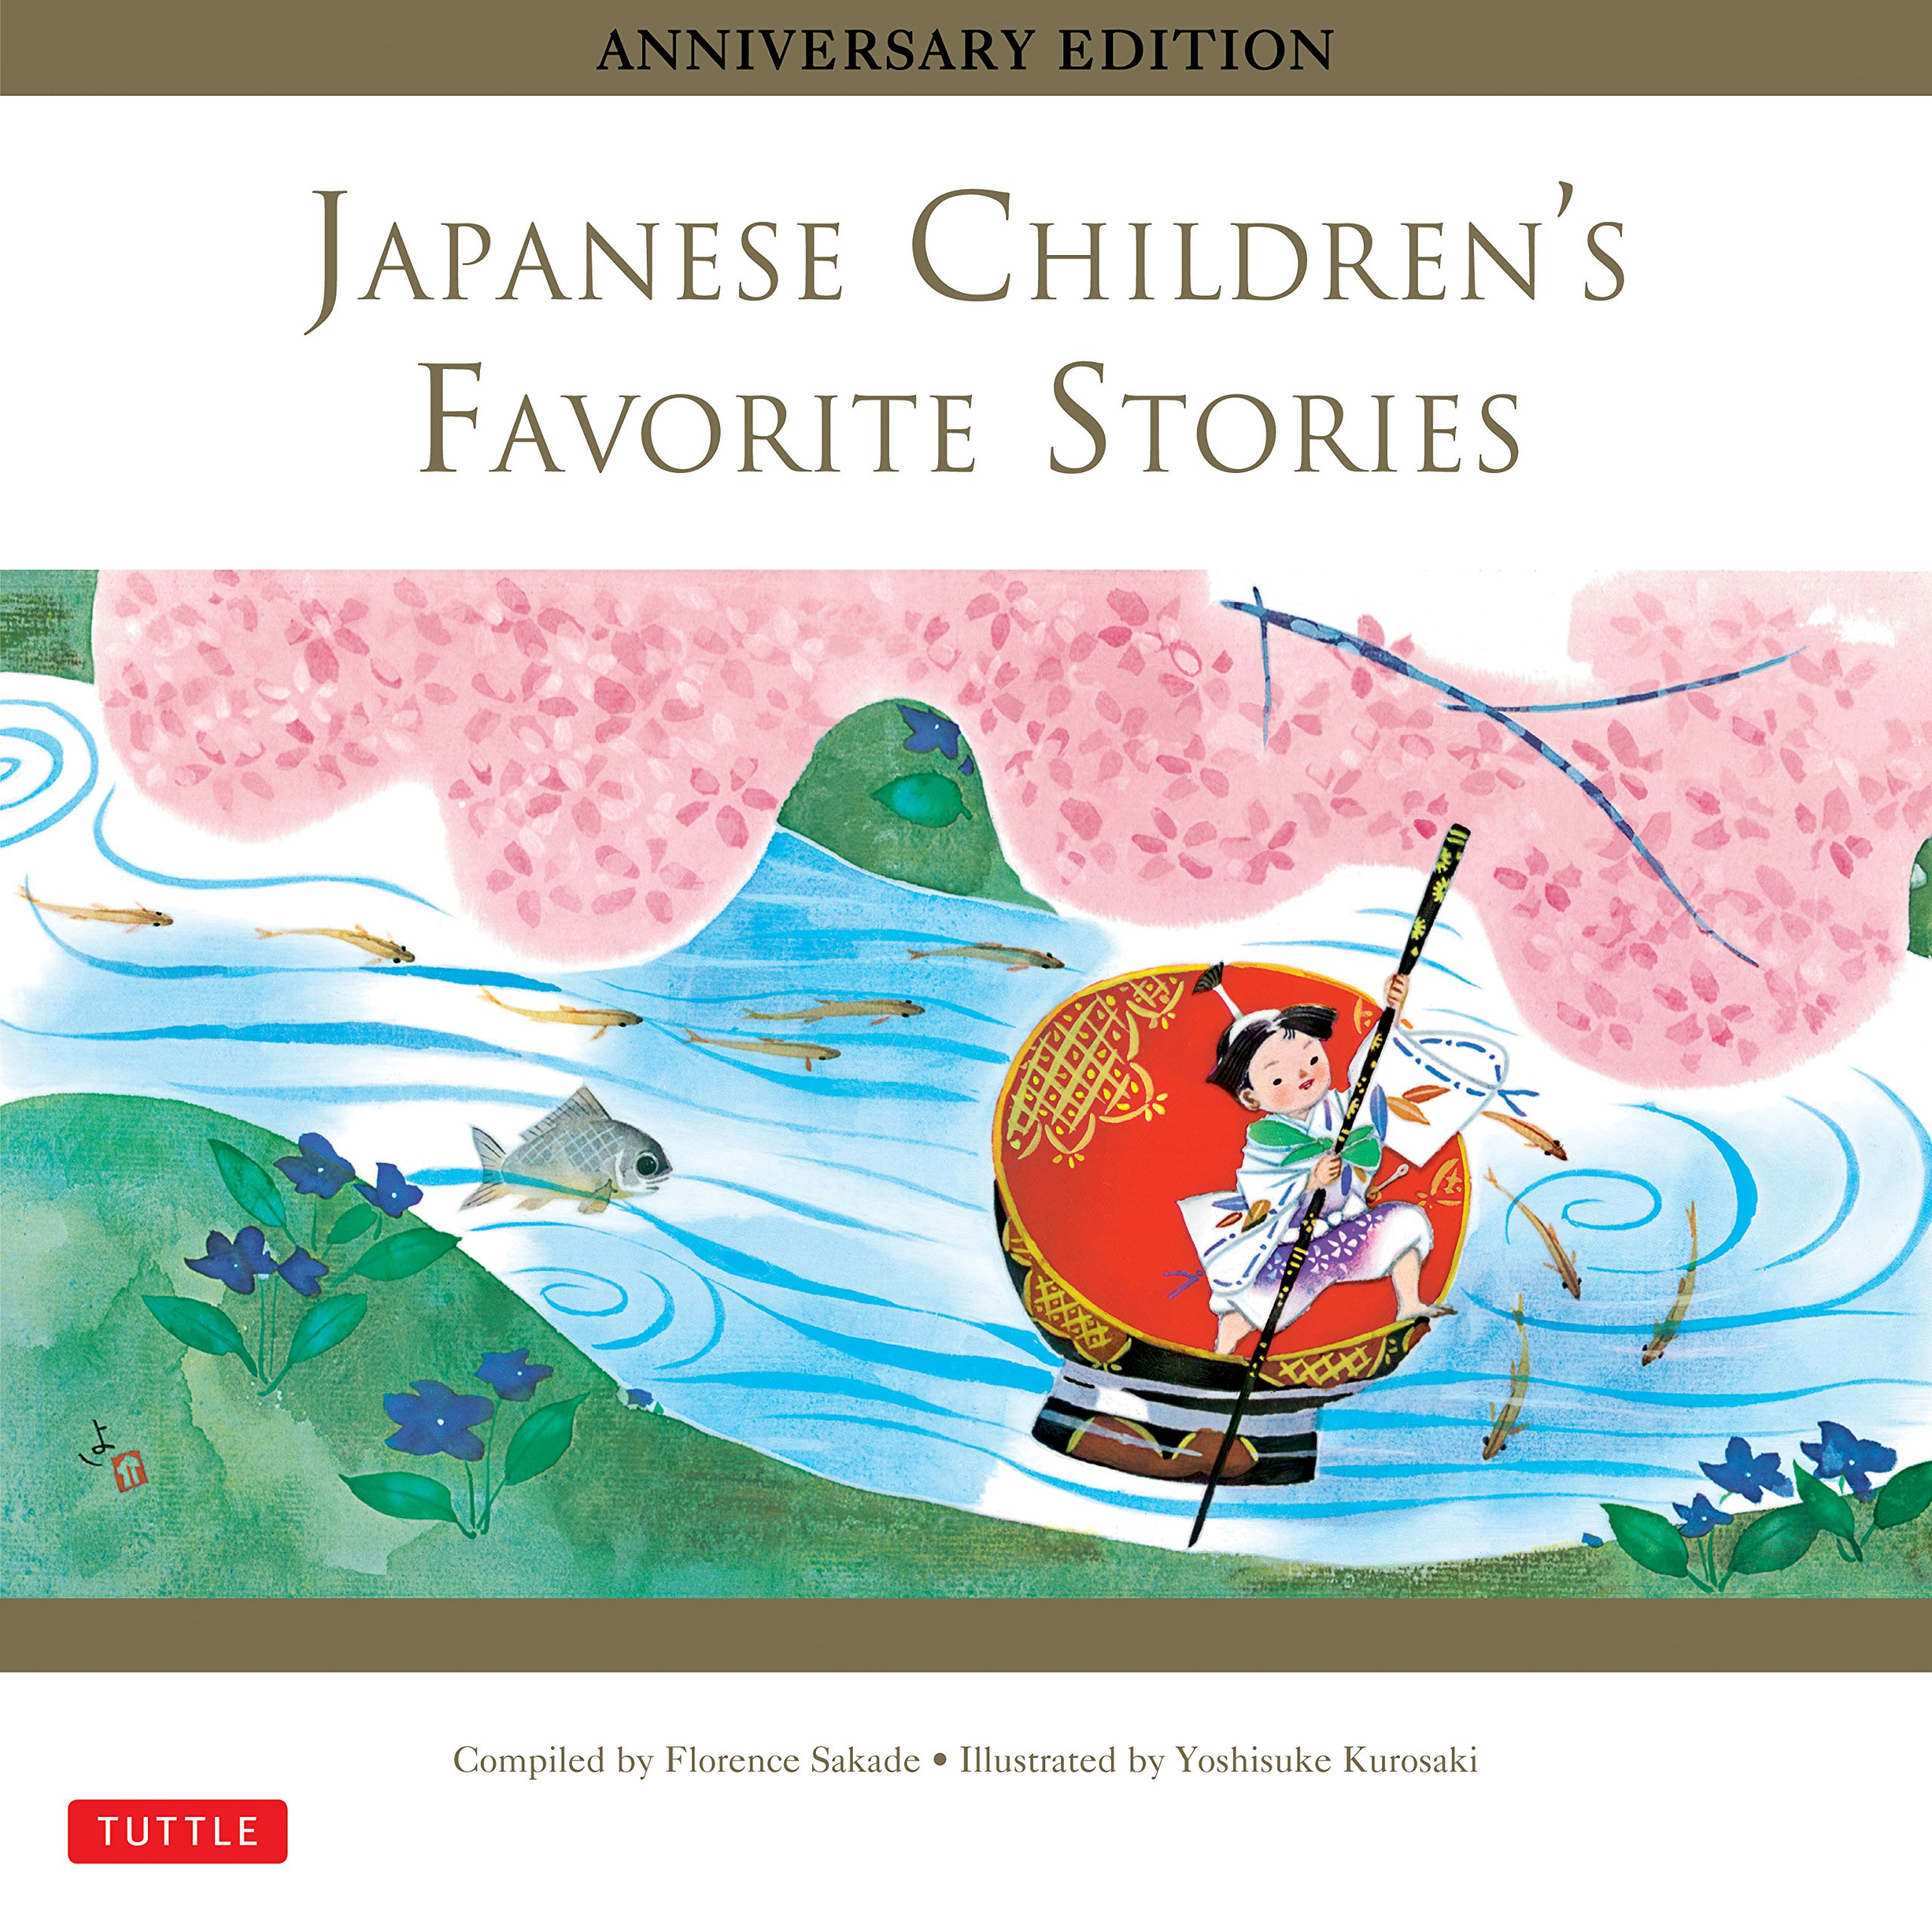 Download Japanese Children's Favorite Stories: Anniversary Edition pdf